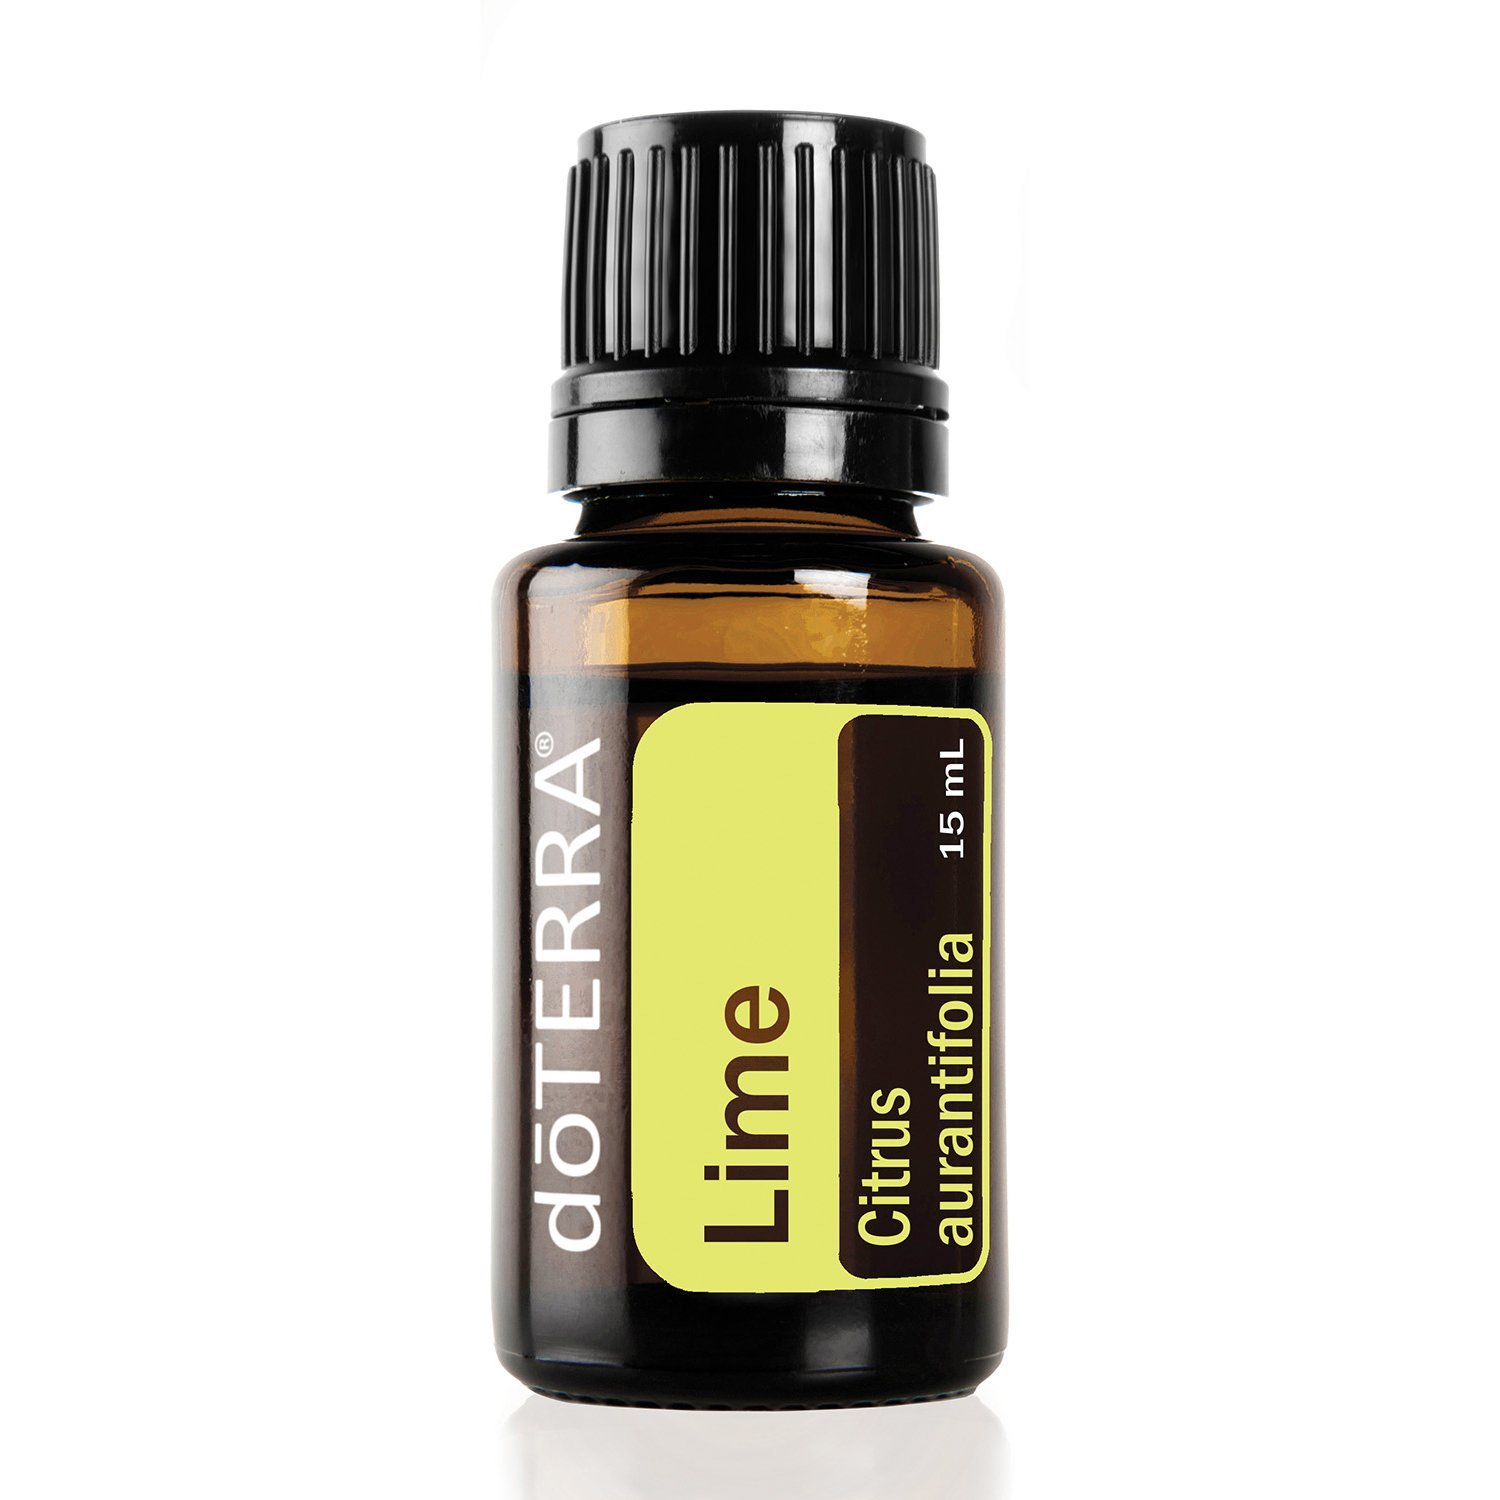 doTERRA - Lime Essential Oil - Supports Healthy Immune Function, Promotes Mood, Emotional Balance, Well-Being, Aromatic, Topical, and Internal Cleanser; For Diffusion, Internal, or Topical Use - 15 ml